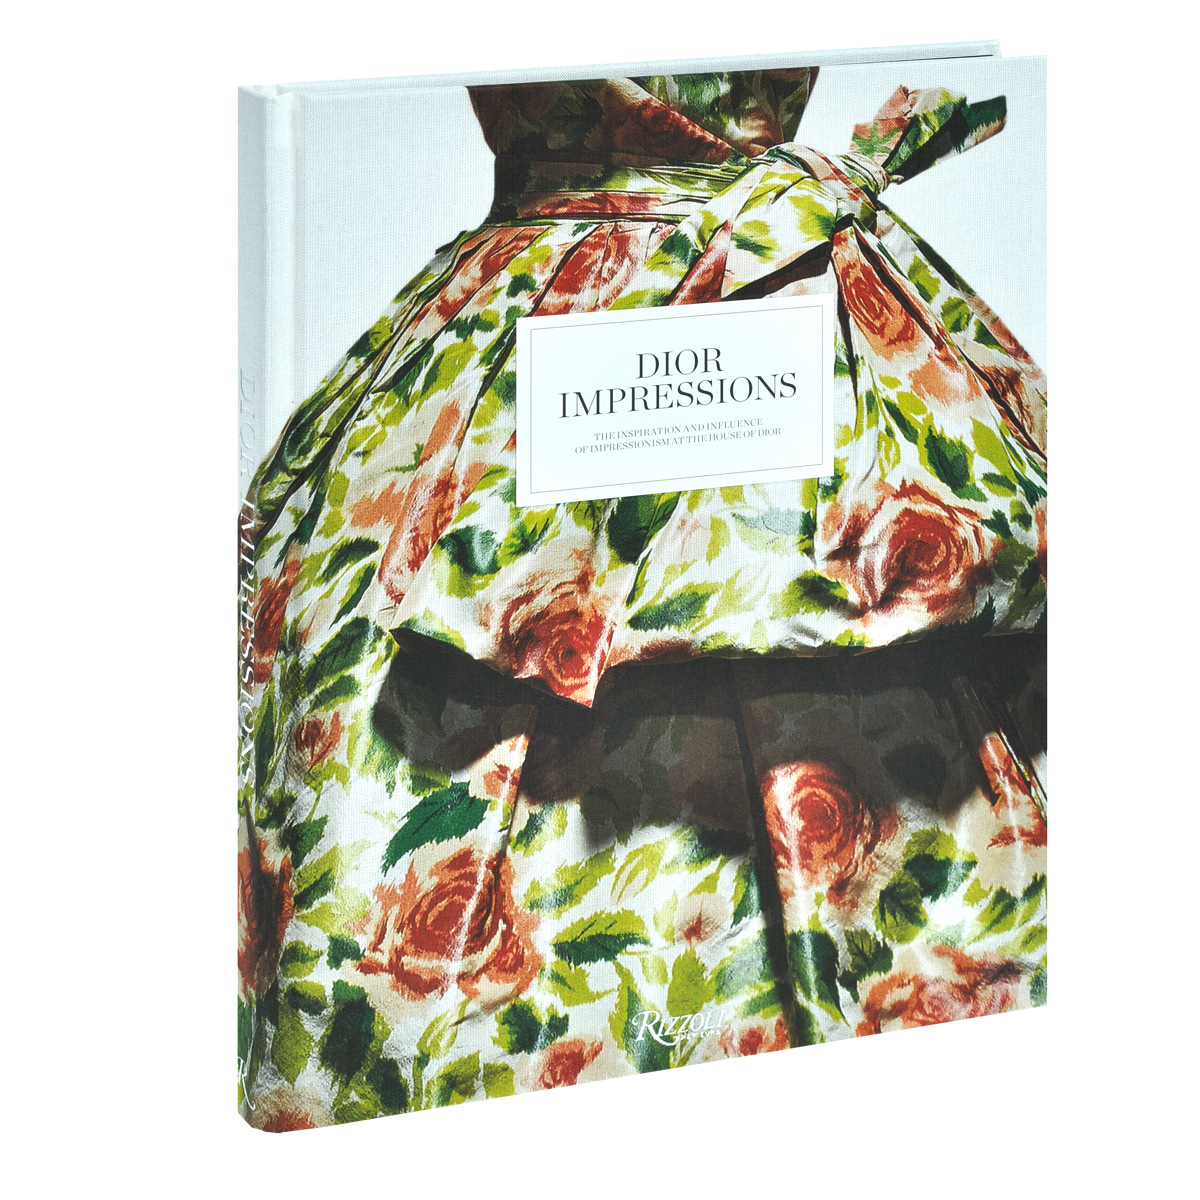 Dior Impressions: The Inspiration and Influence of Impressionism at the House of Dior himanshu aeran and sunit kumar jurel spray disinfection of dental impressions